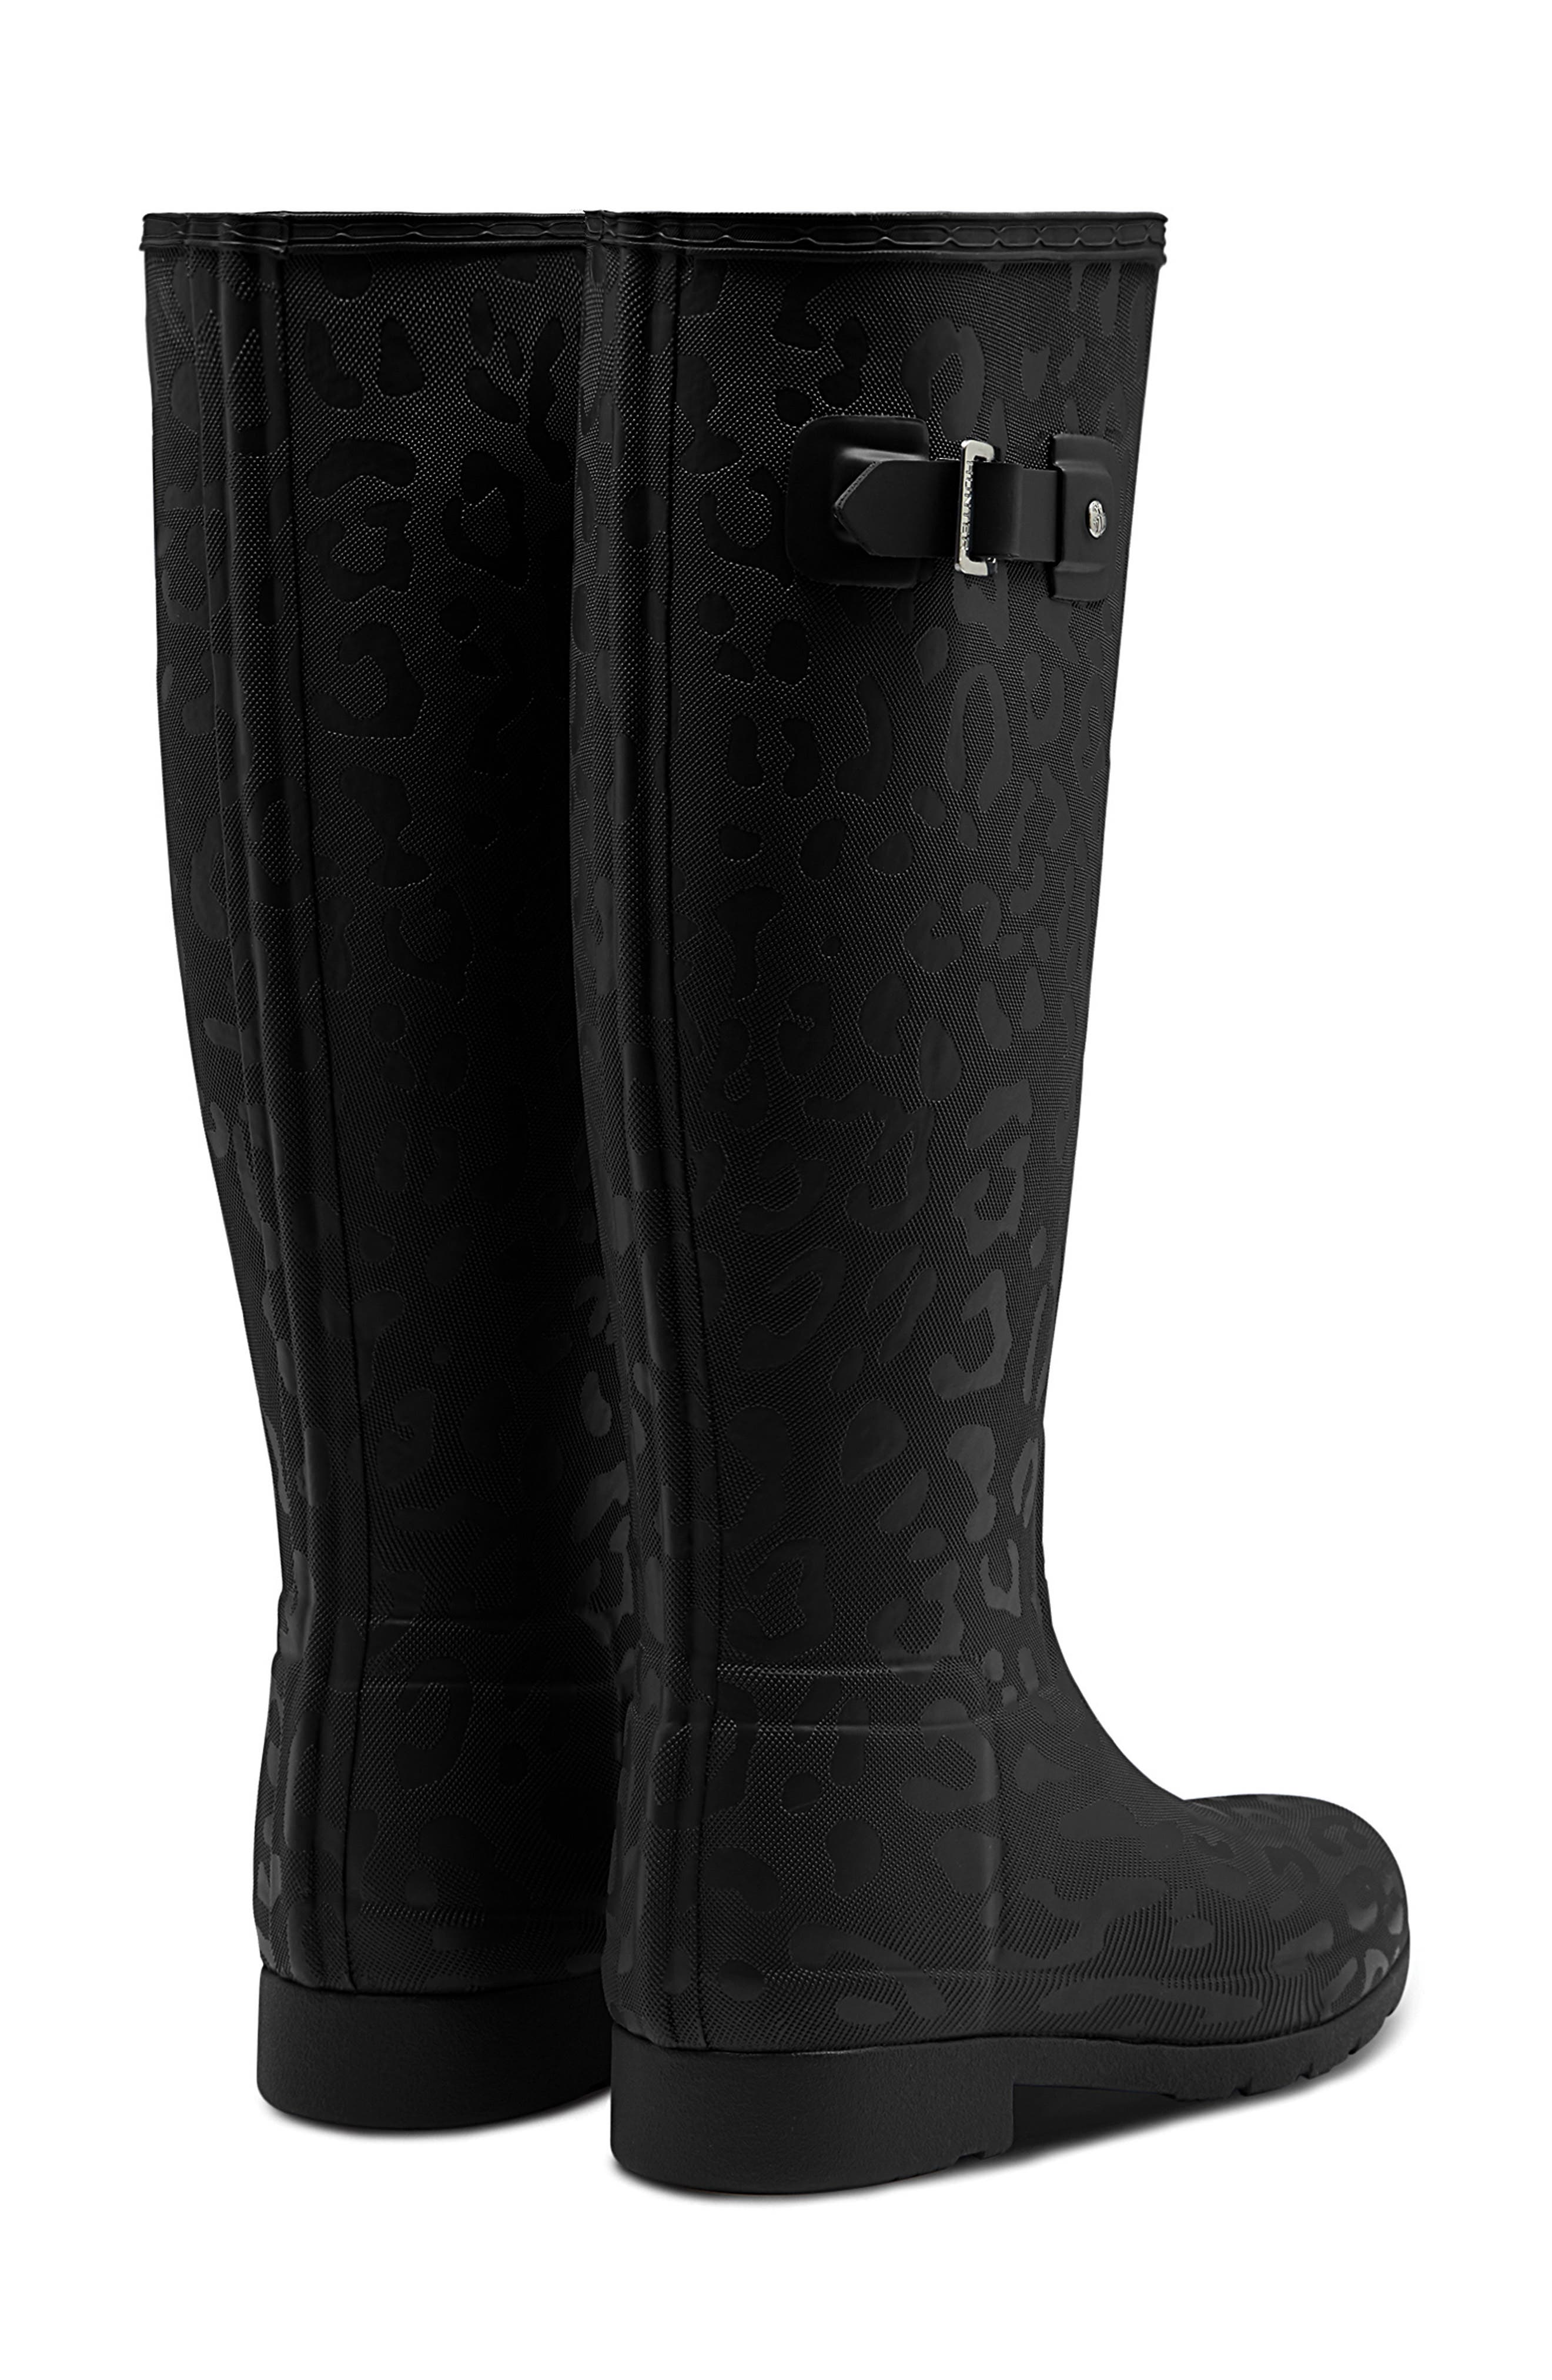 Original Insulated Refined Tall Rain Boot,                             Alternate thumbnail 2, color,                             BLACK